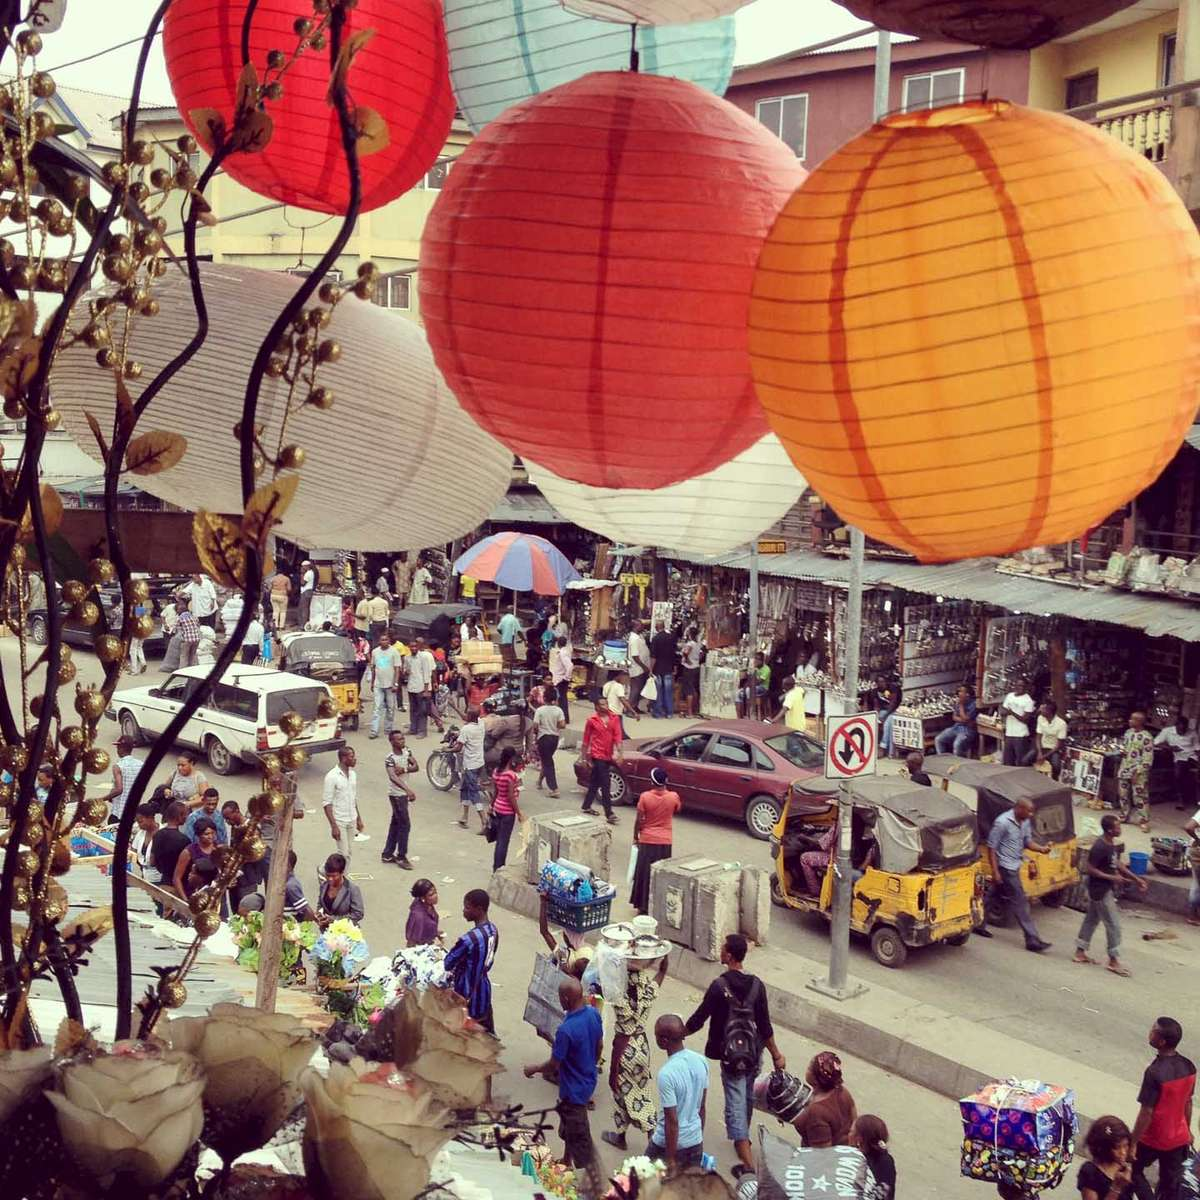 Markets of Lagos, Nigeria. October 2012.